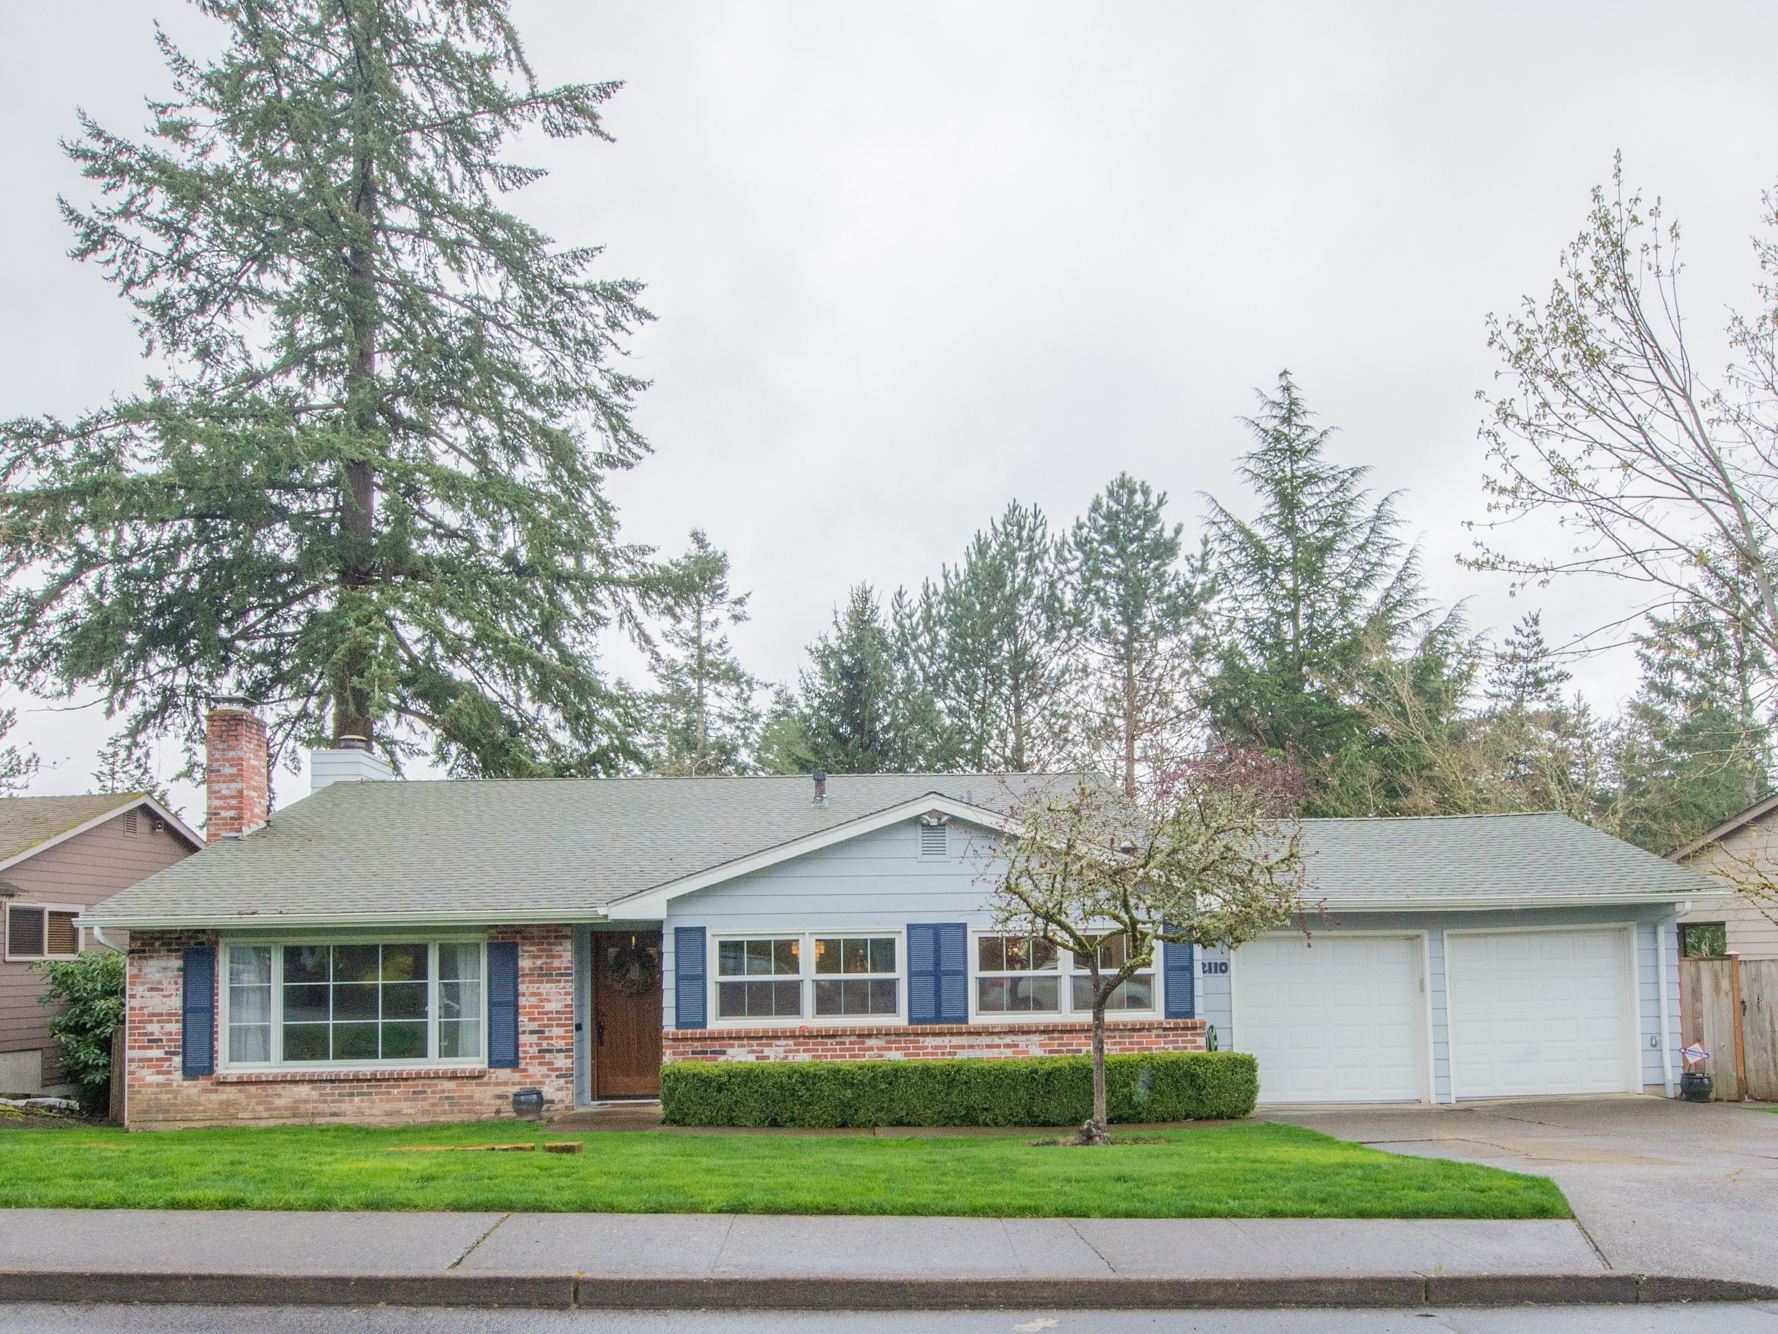 Fresh 4 Bedroom Home in the The Bluffs, NW Portland